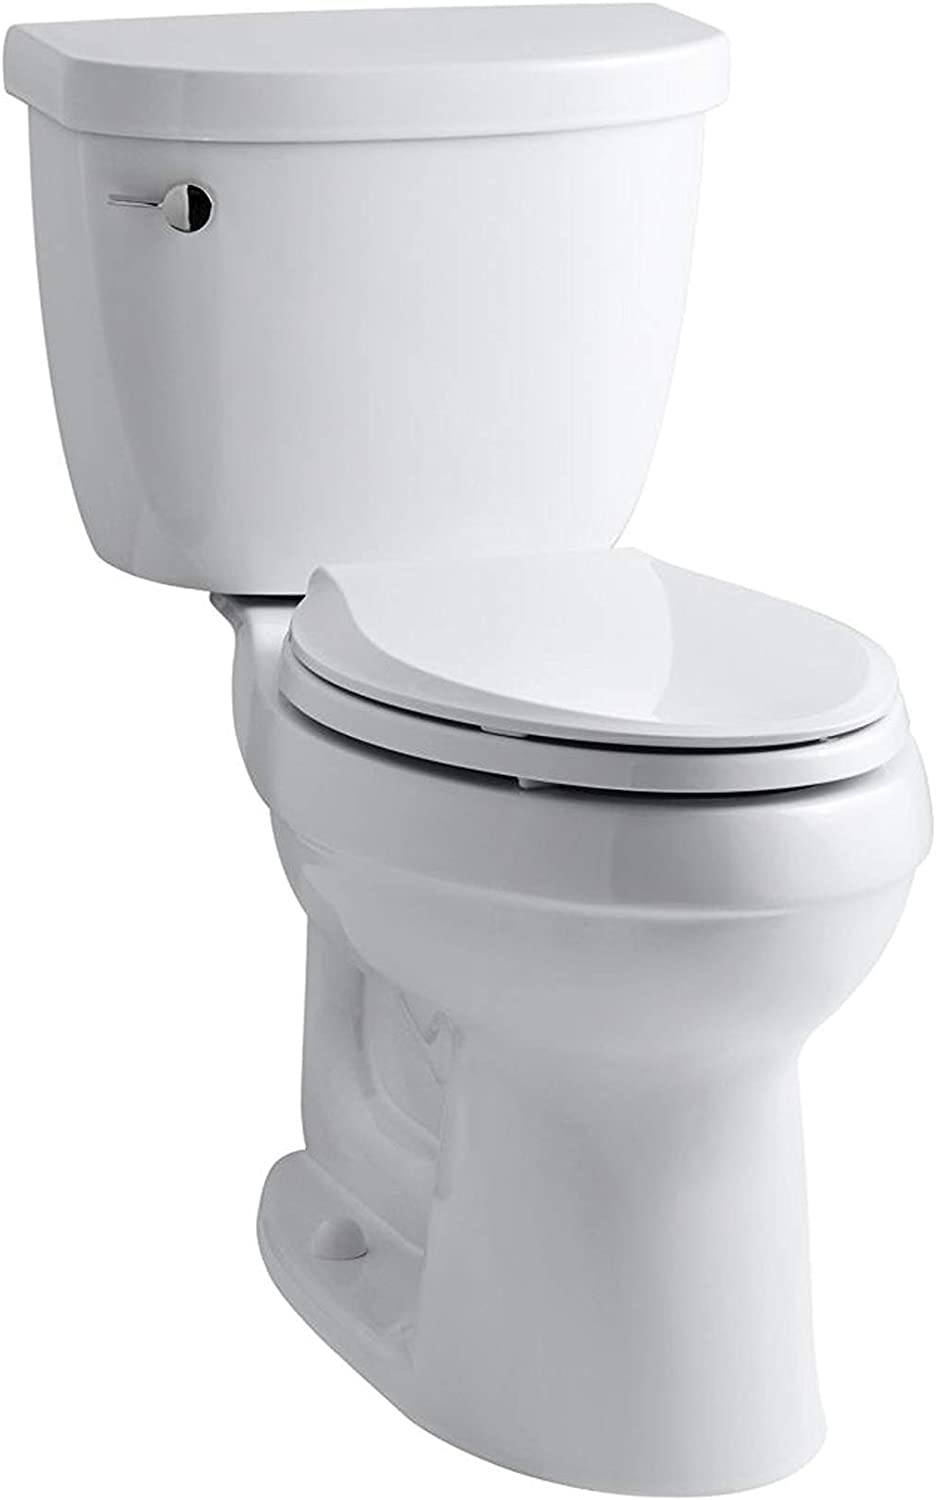 best comfort height toilets: Kohler K-3589-0 Cimarron Comfort Height Toilet